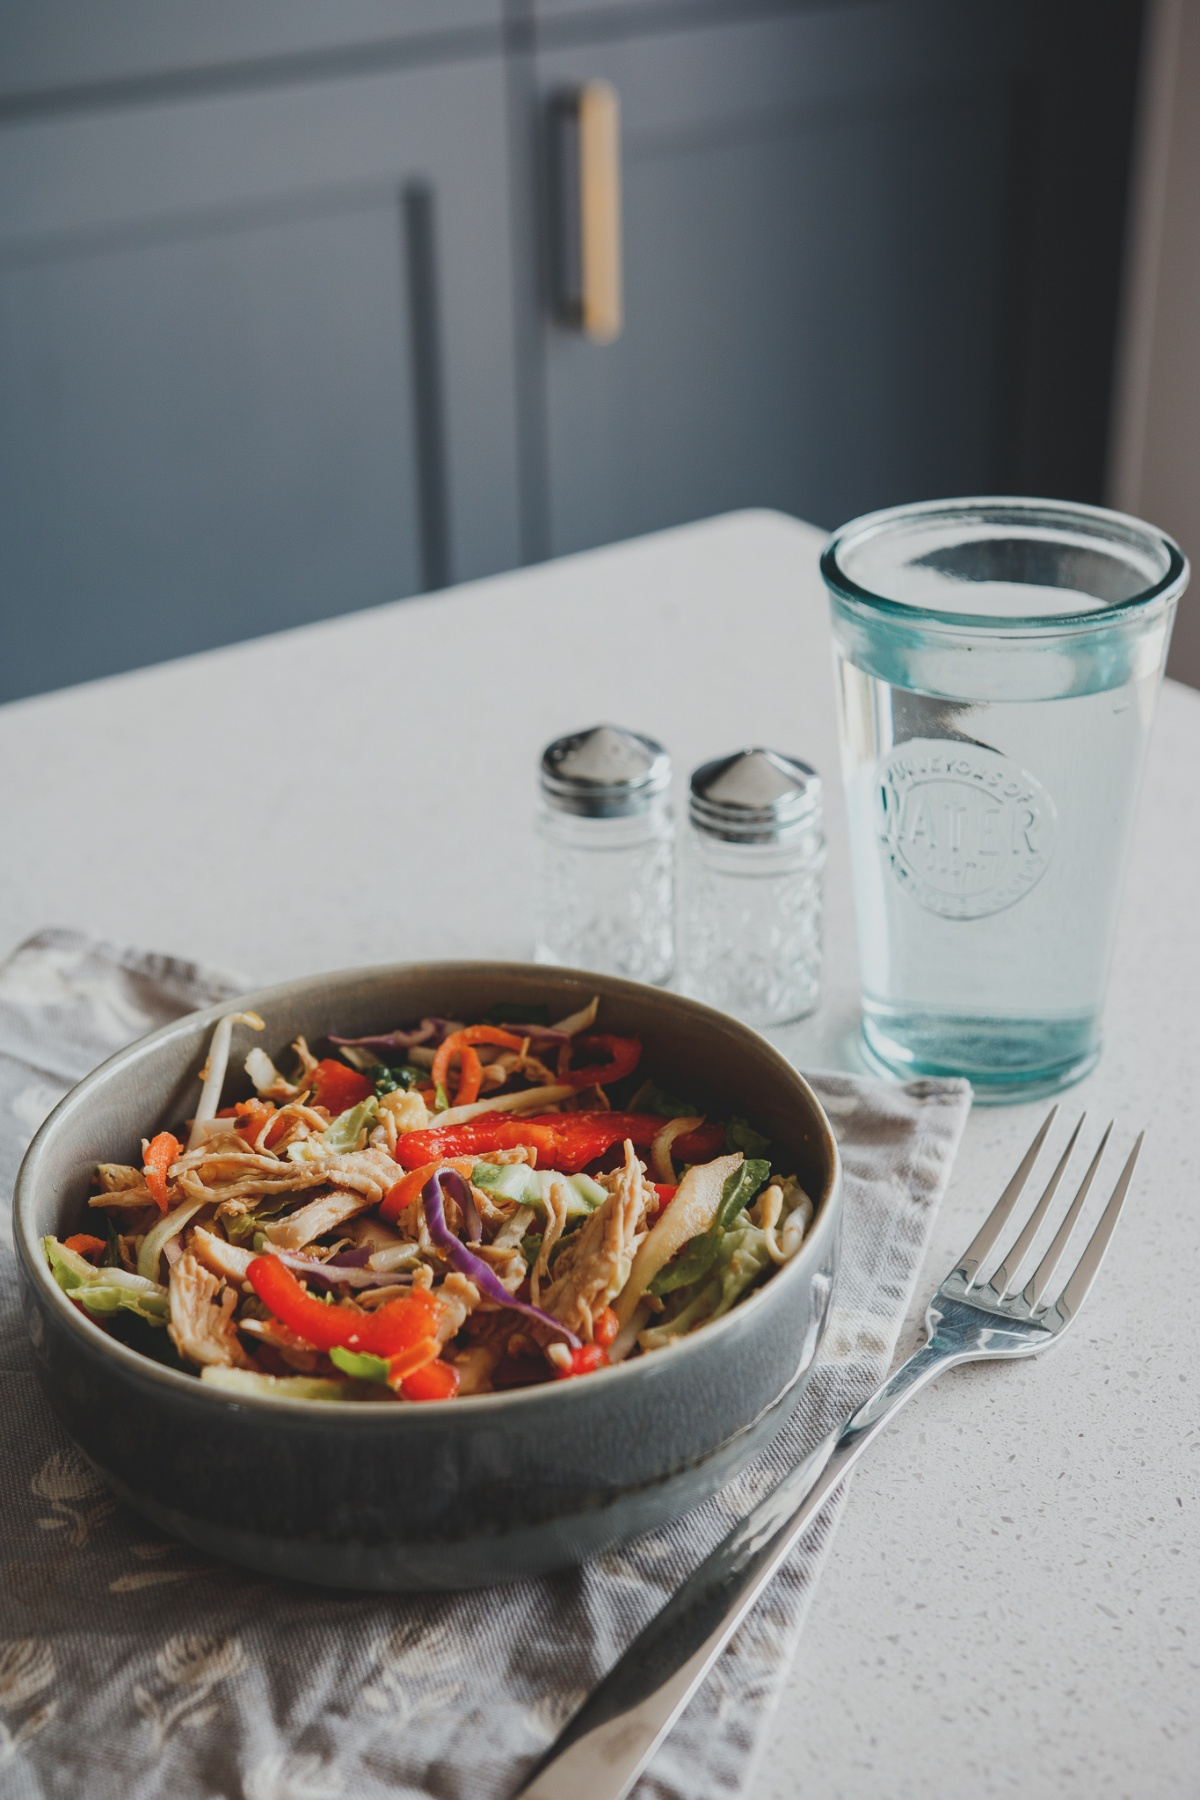 chicken and vegetables in a bowl